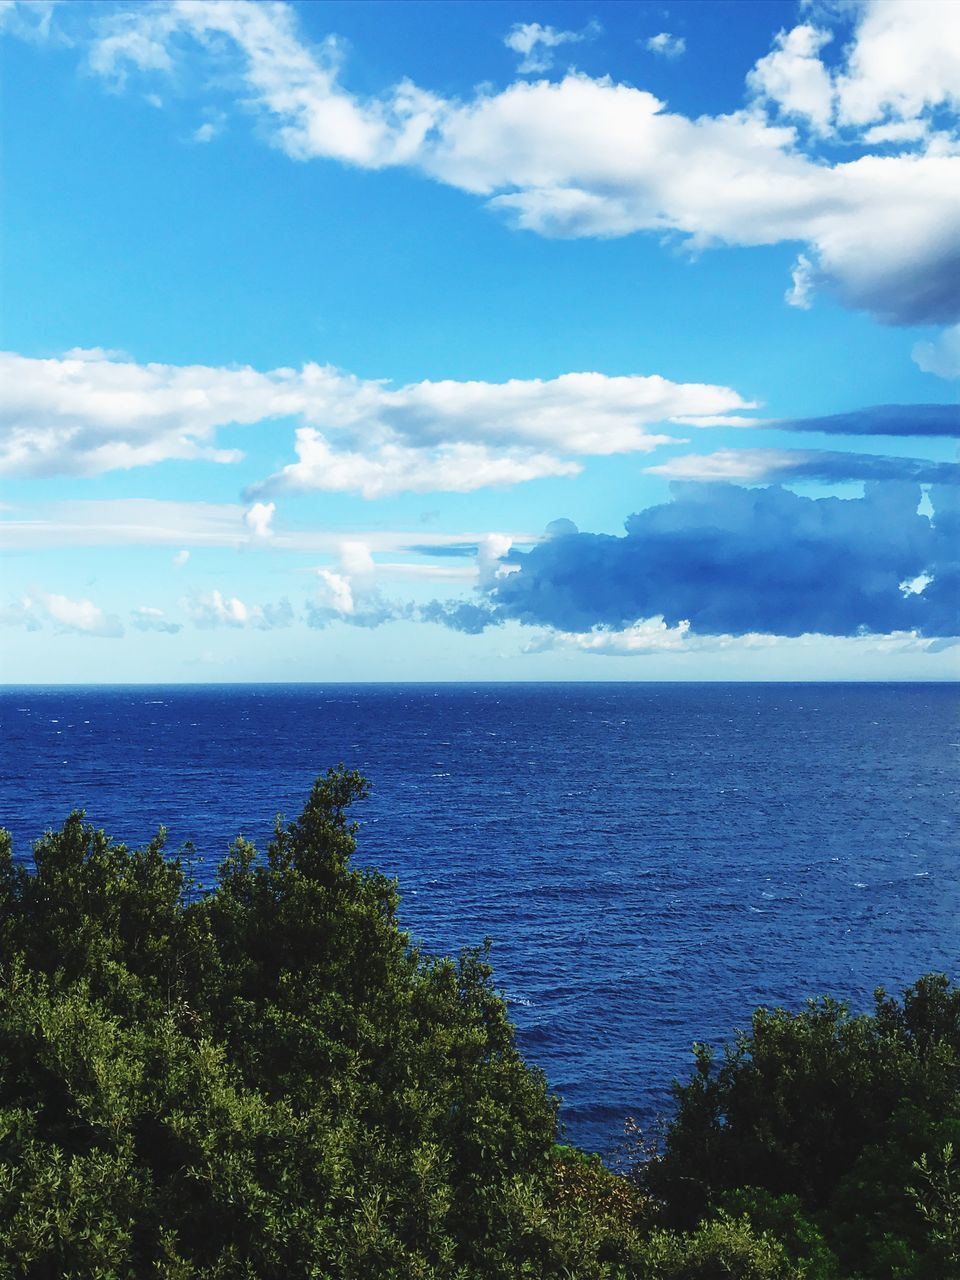 sea, sky, scenics, horizon over water, water, nature, beauty in nature, tranquil scene, tranquility, cloud - sky, day, blue, outdoors, tree, no people, growth